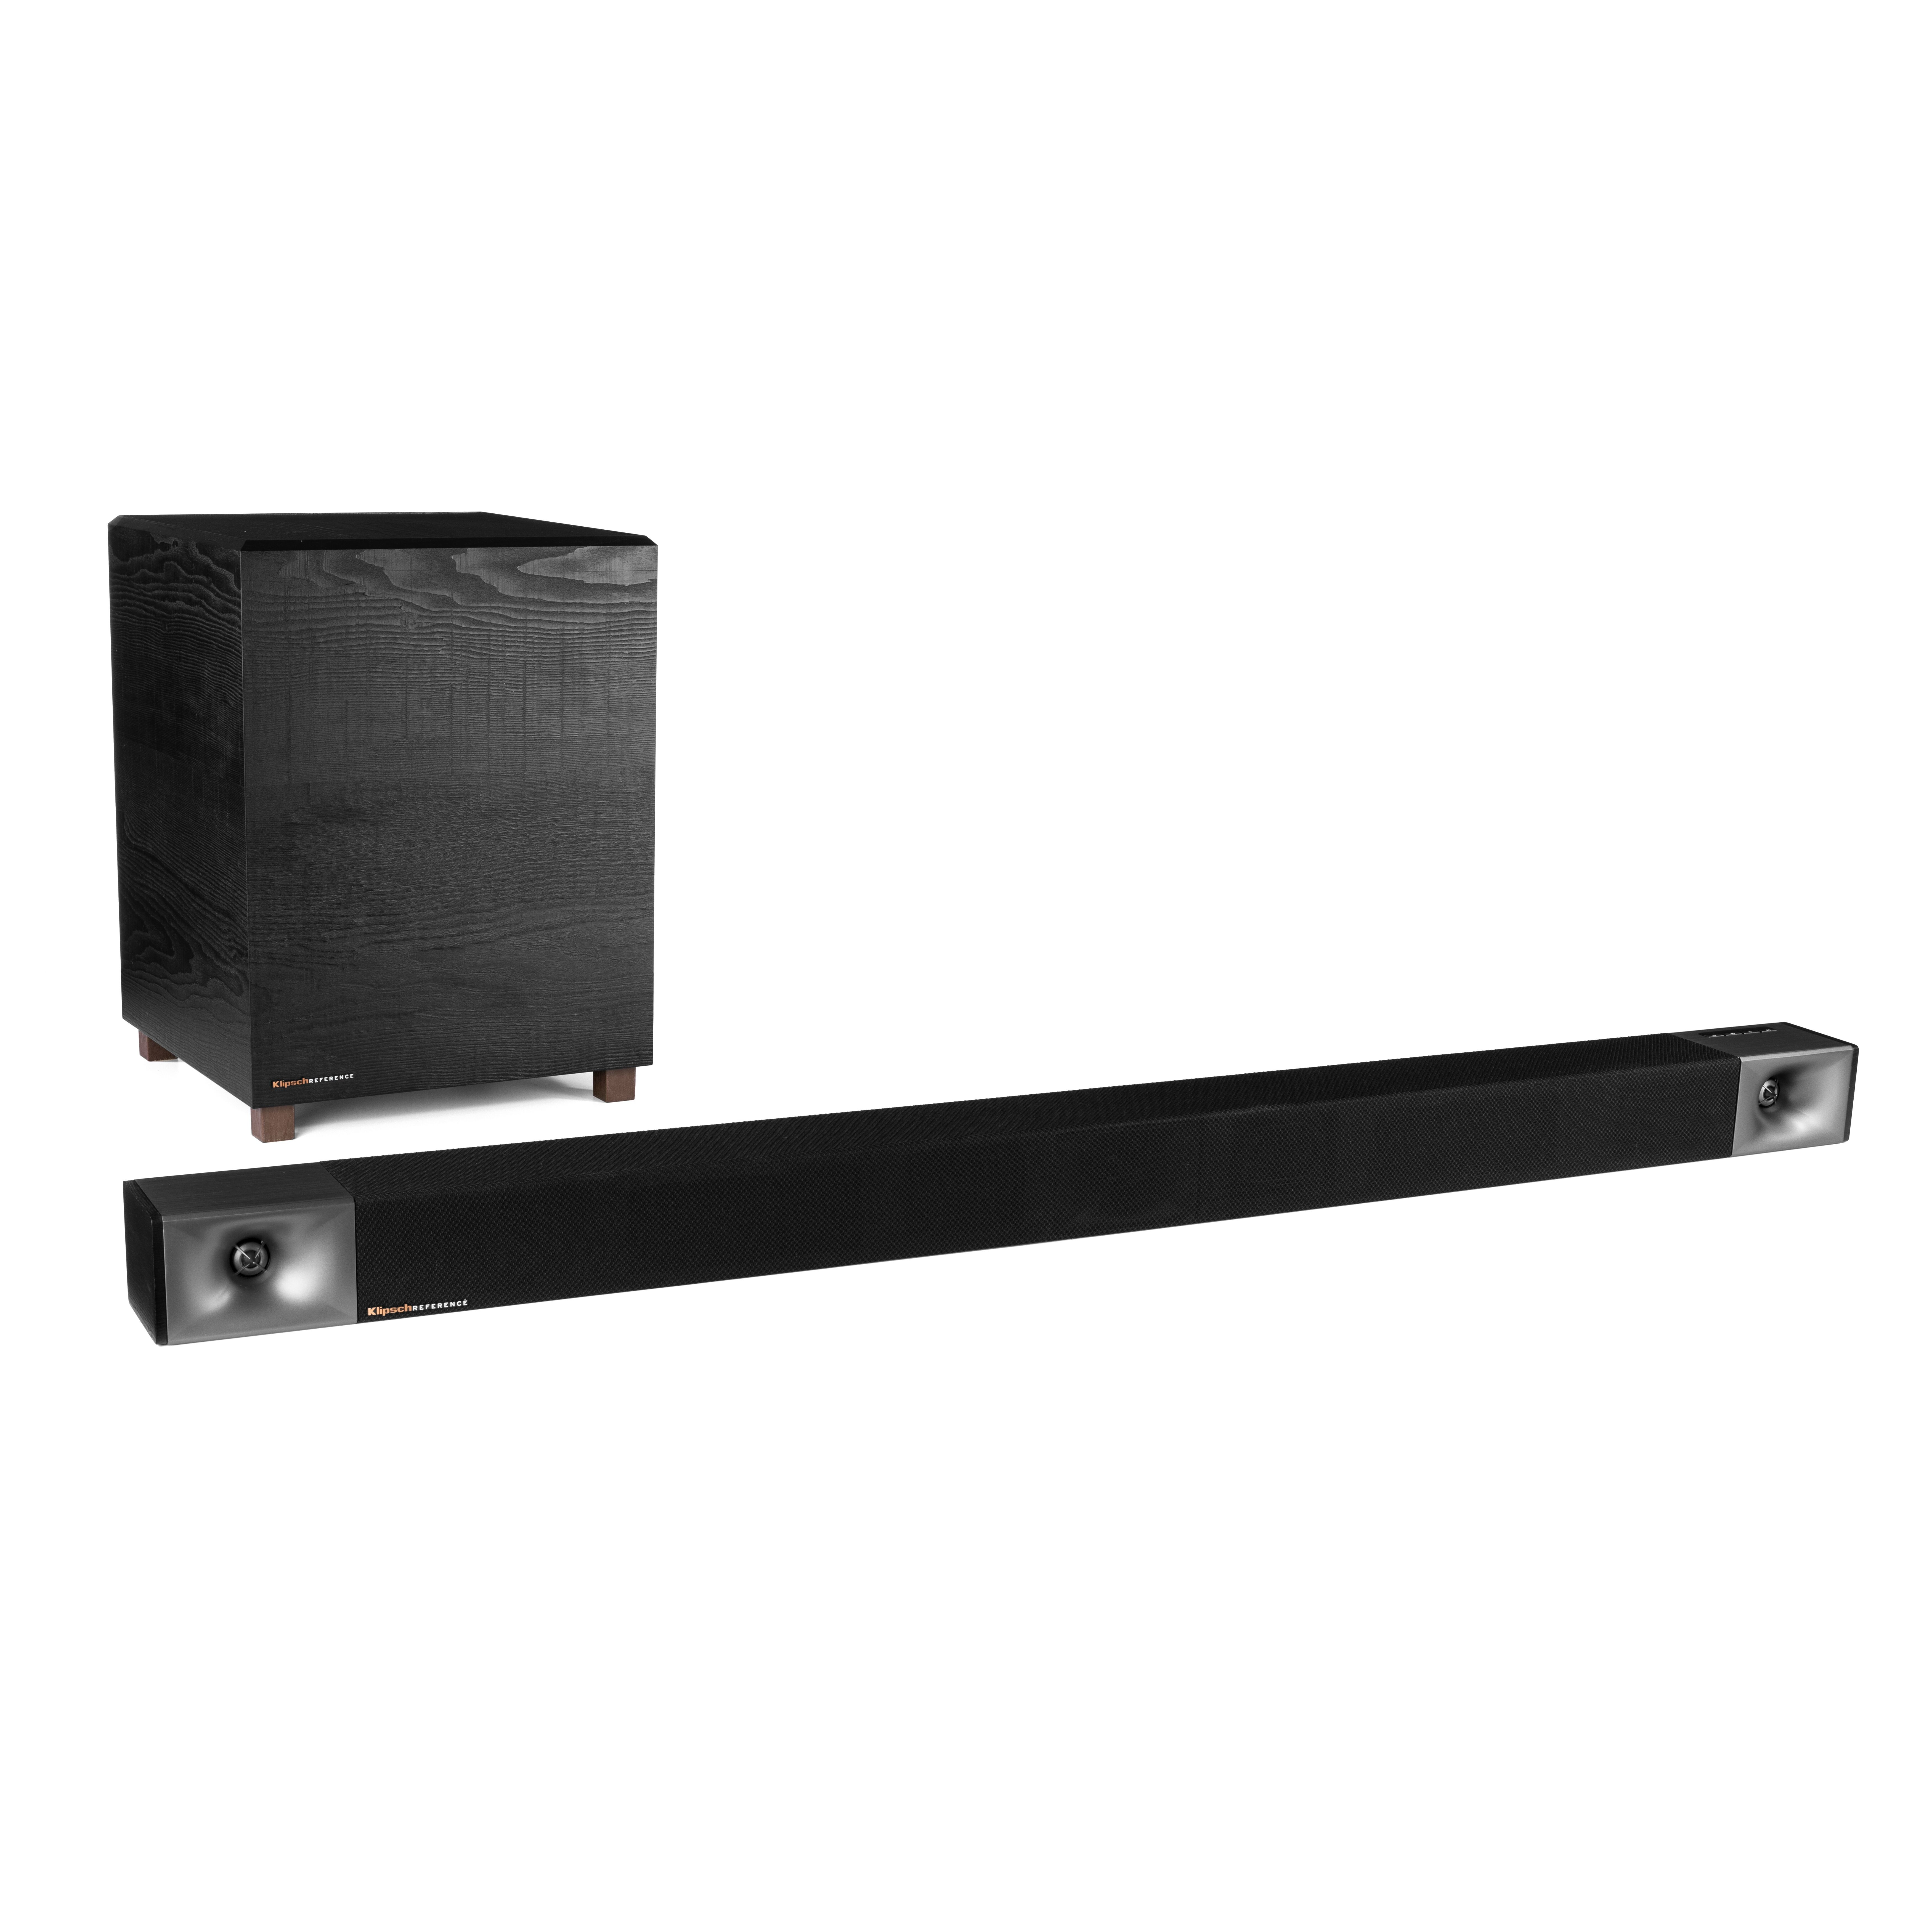 Foto van Klipsch BAR 48 Soundbar